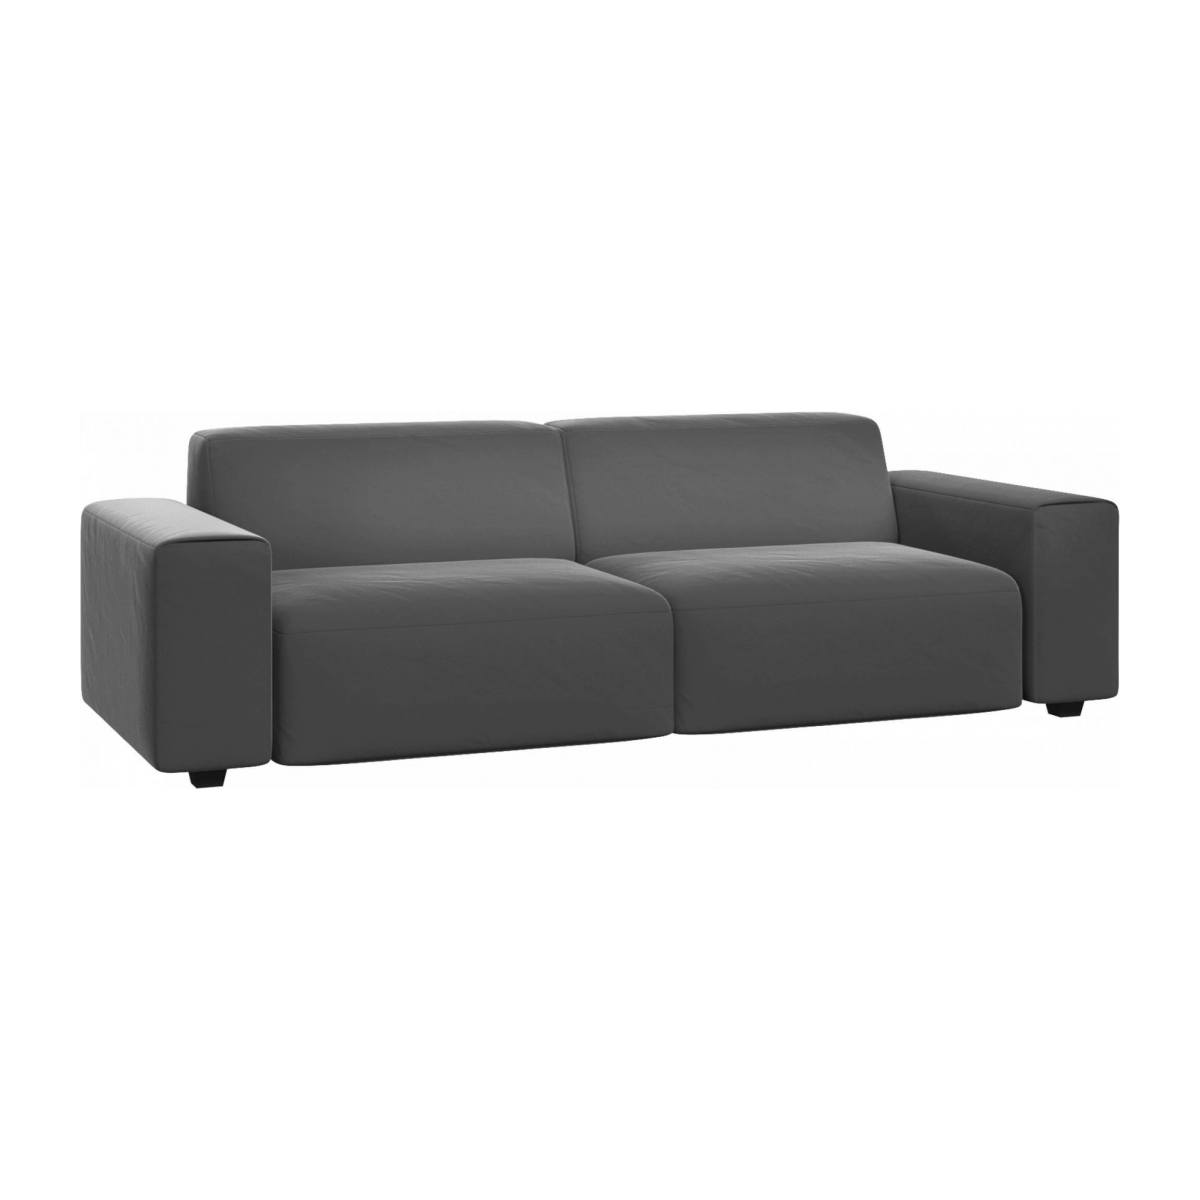 4 seater sofa in Super Velvet fabric, silver grey n°3